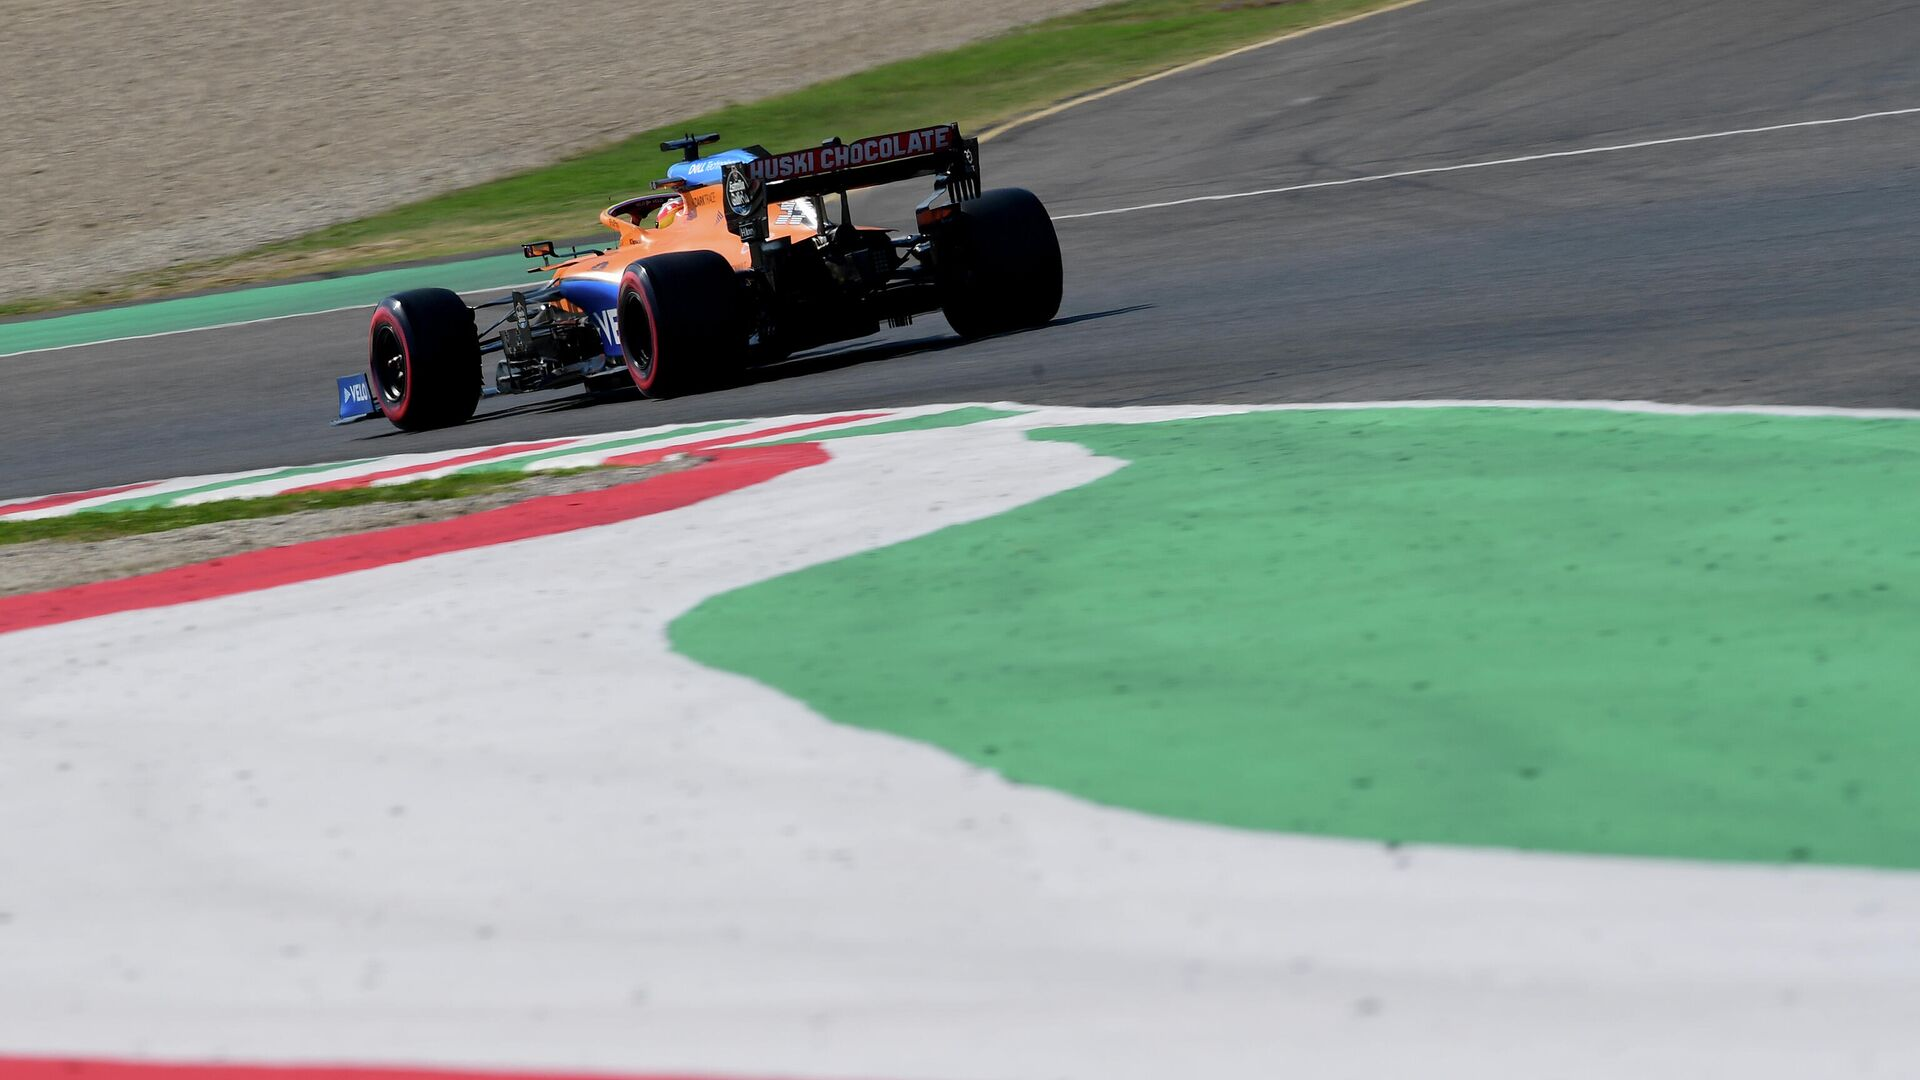 McLaren's Spanish driver Carlos Sainz Jr drives during the qualifying session at the Mugello circuit ahead of the Tuscany Formula One Grand Prix in Scarperia e San Piero on September 12, 2020. (Photo by Claudio Giovannini / POOL / AFP) - РИА Новости, 1920, 13.09.2020